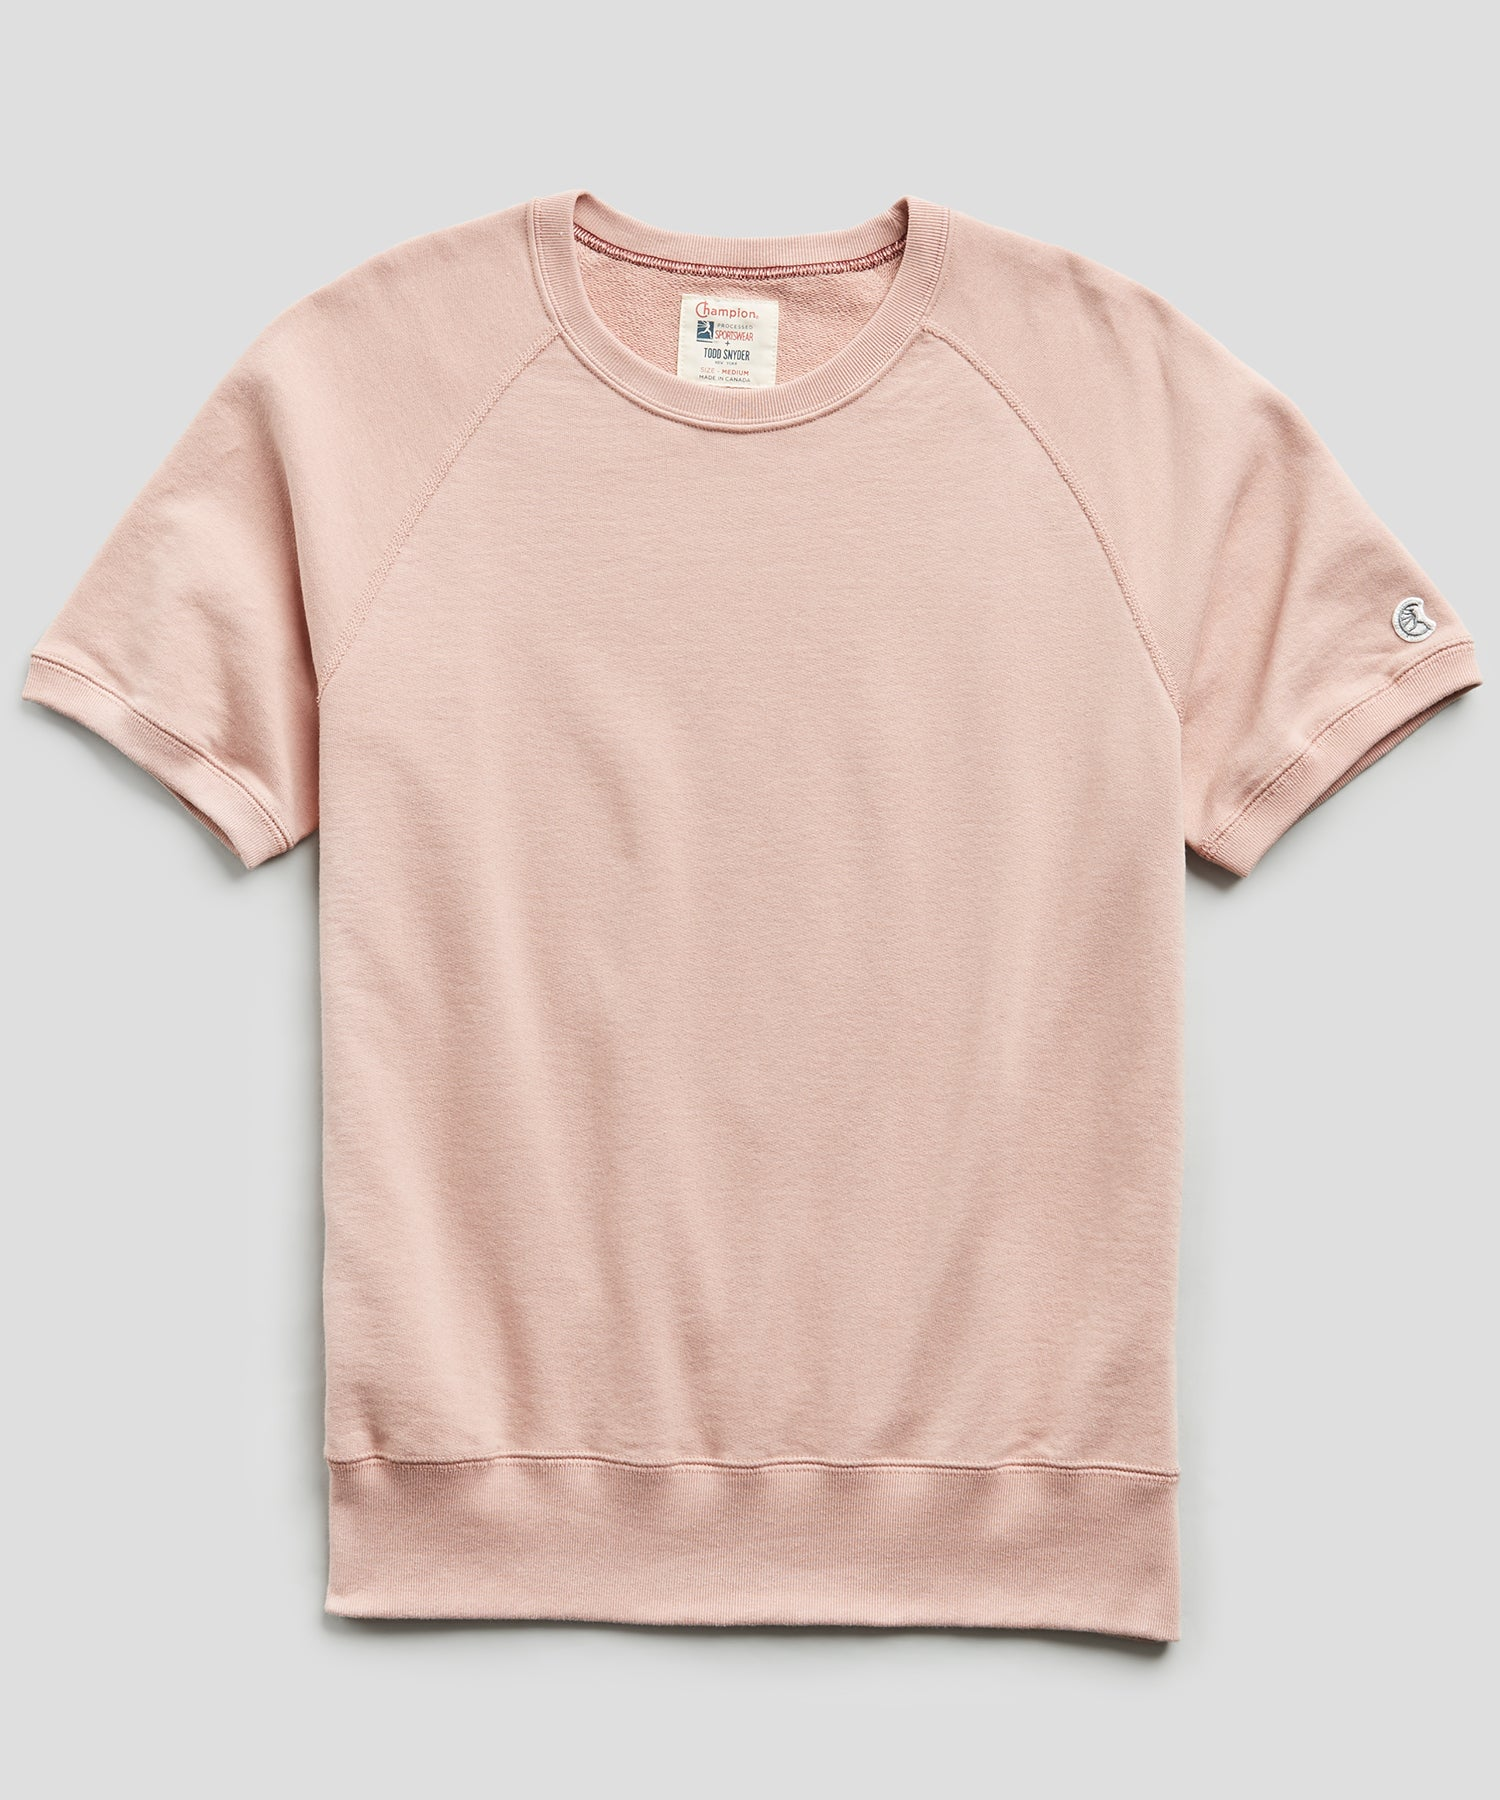 Terry Short Sleeve Sweatshirt in Desert Rose